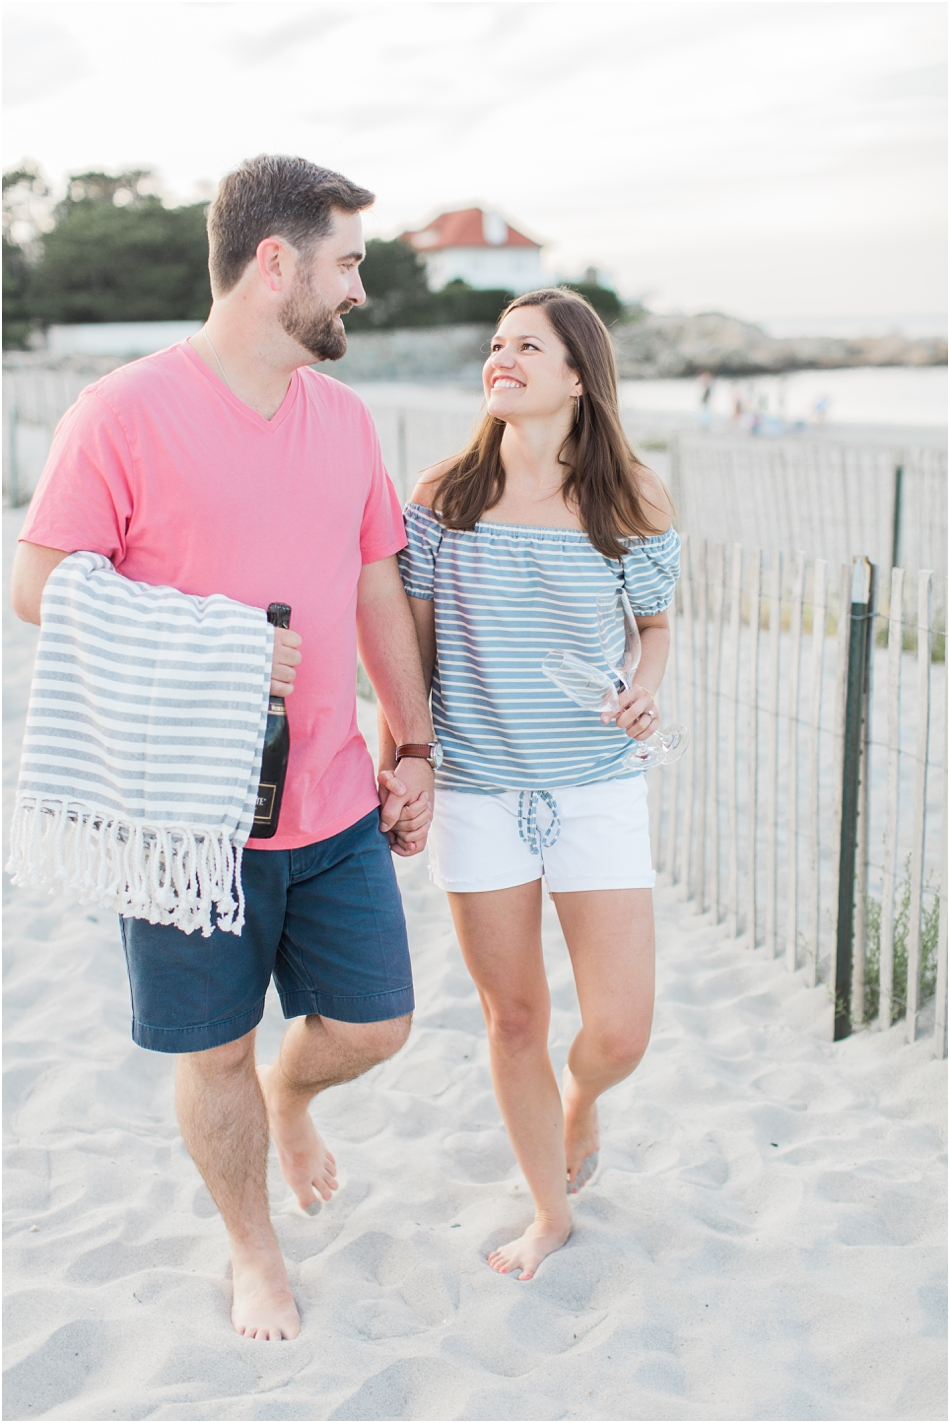 cohasset_beach_harbor_engagement_massachusetts_cape_cod_new_england_wedding_photographer_Meredith_Jane_Photography_photo_2141.jpg